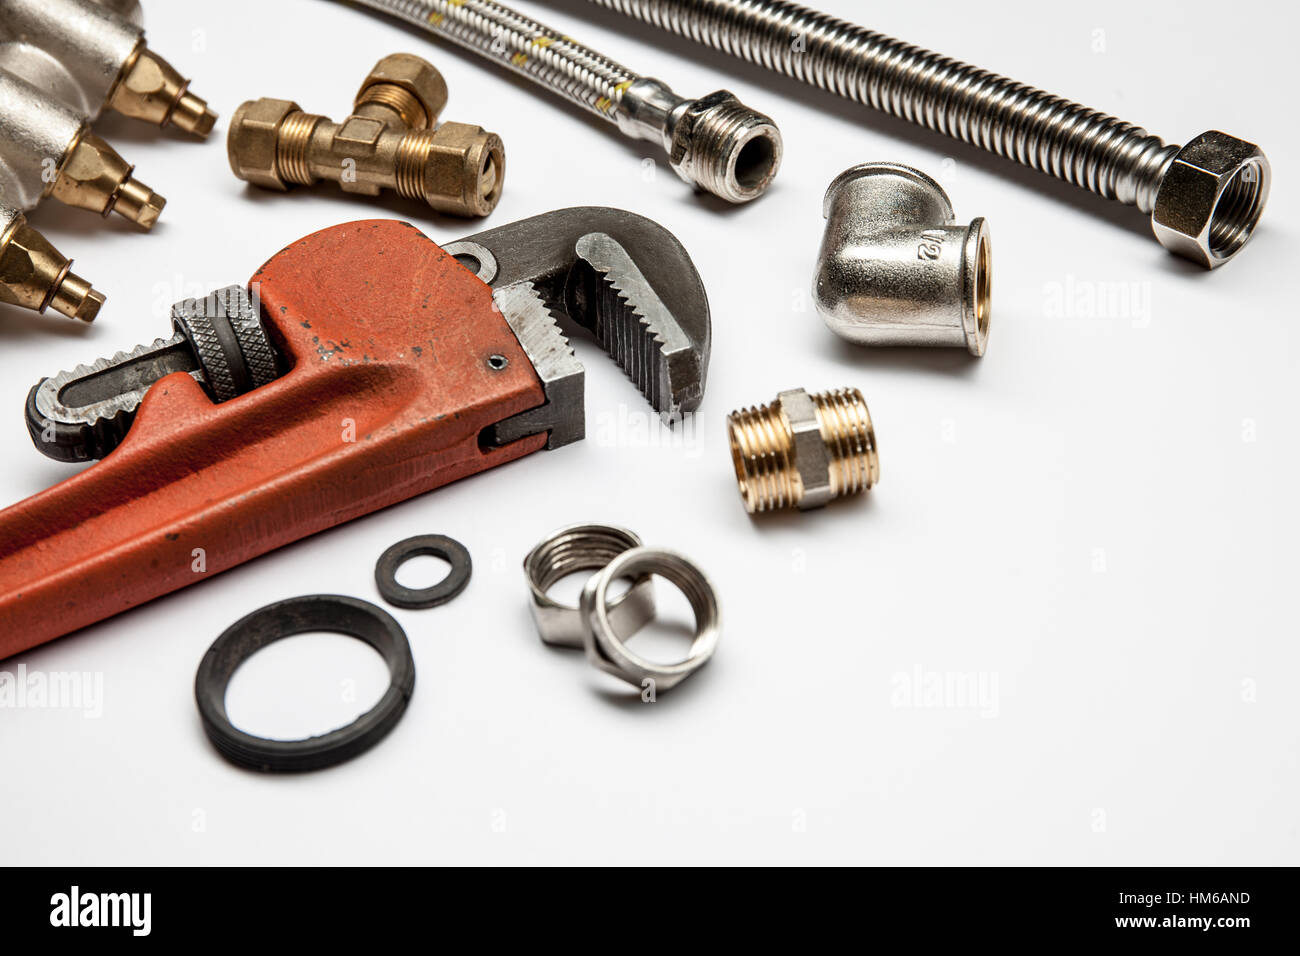 plumbing tools and equipment on white background with copy space Stock Photo